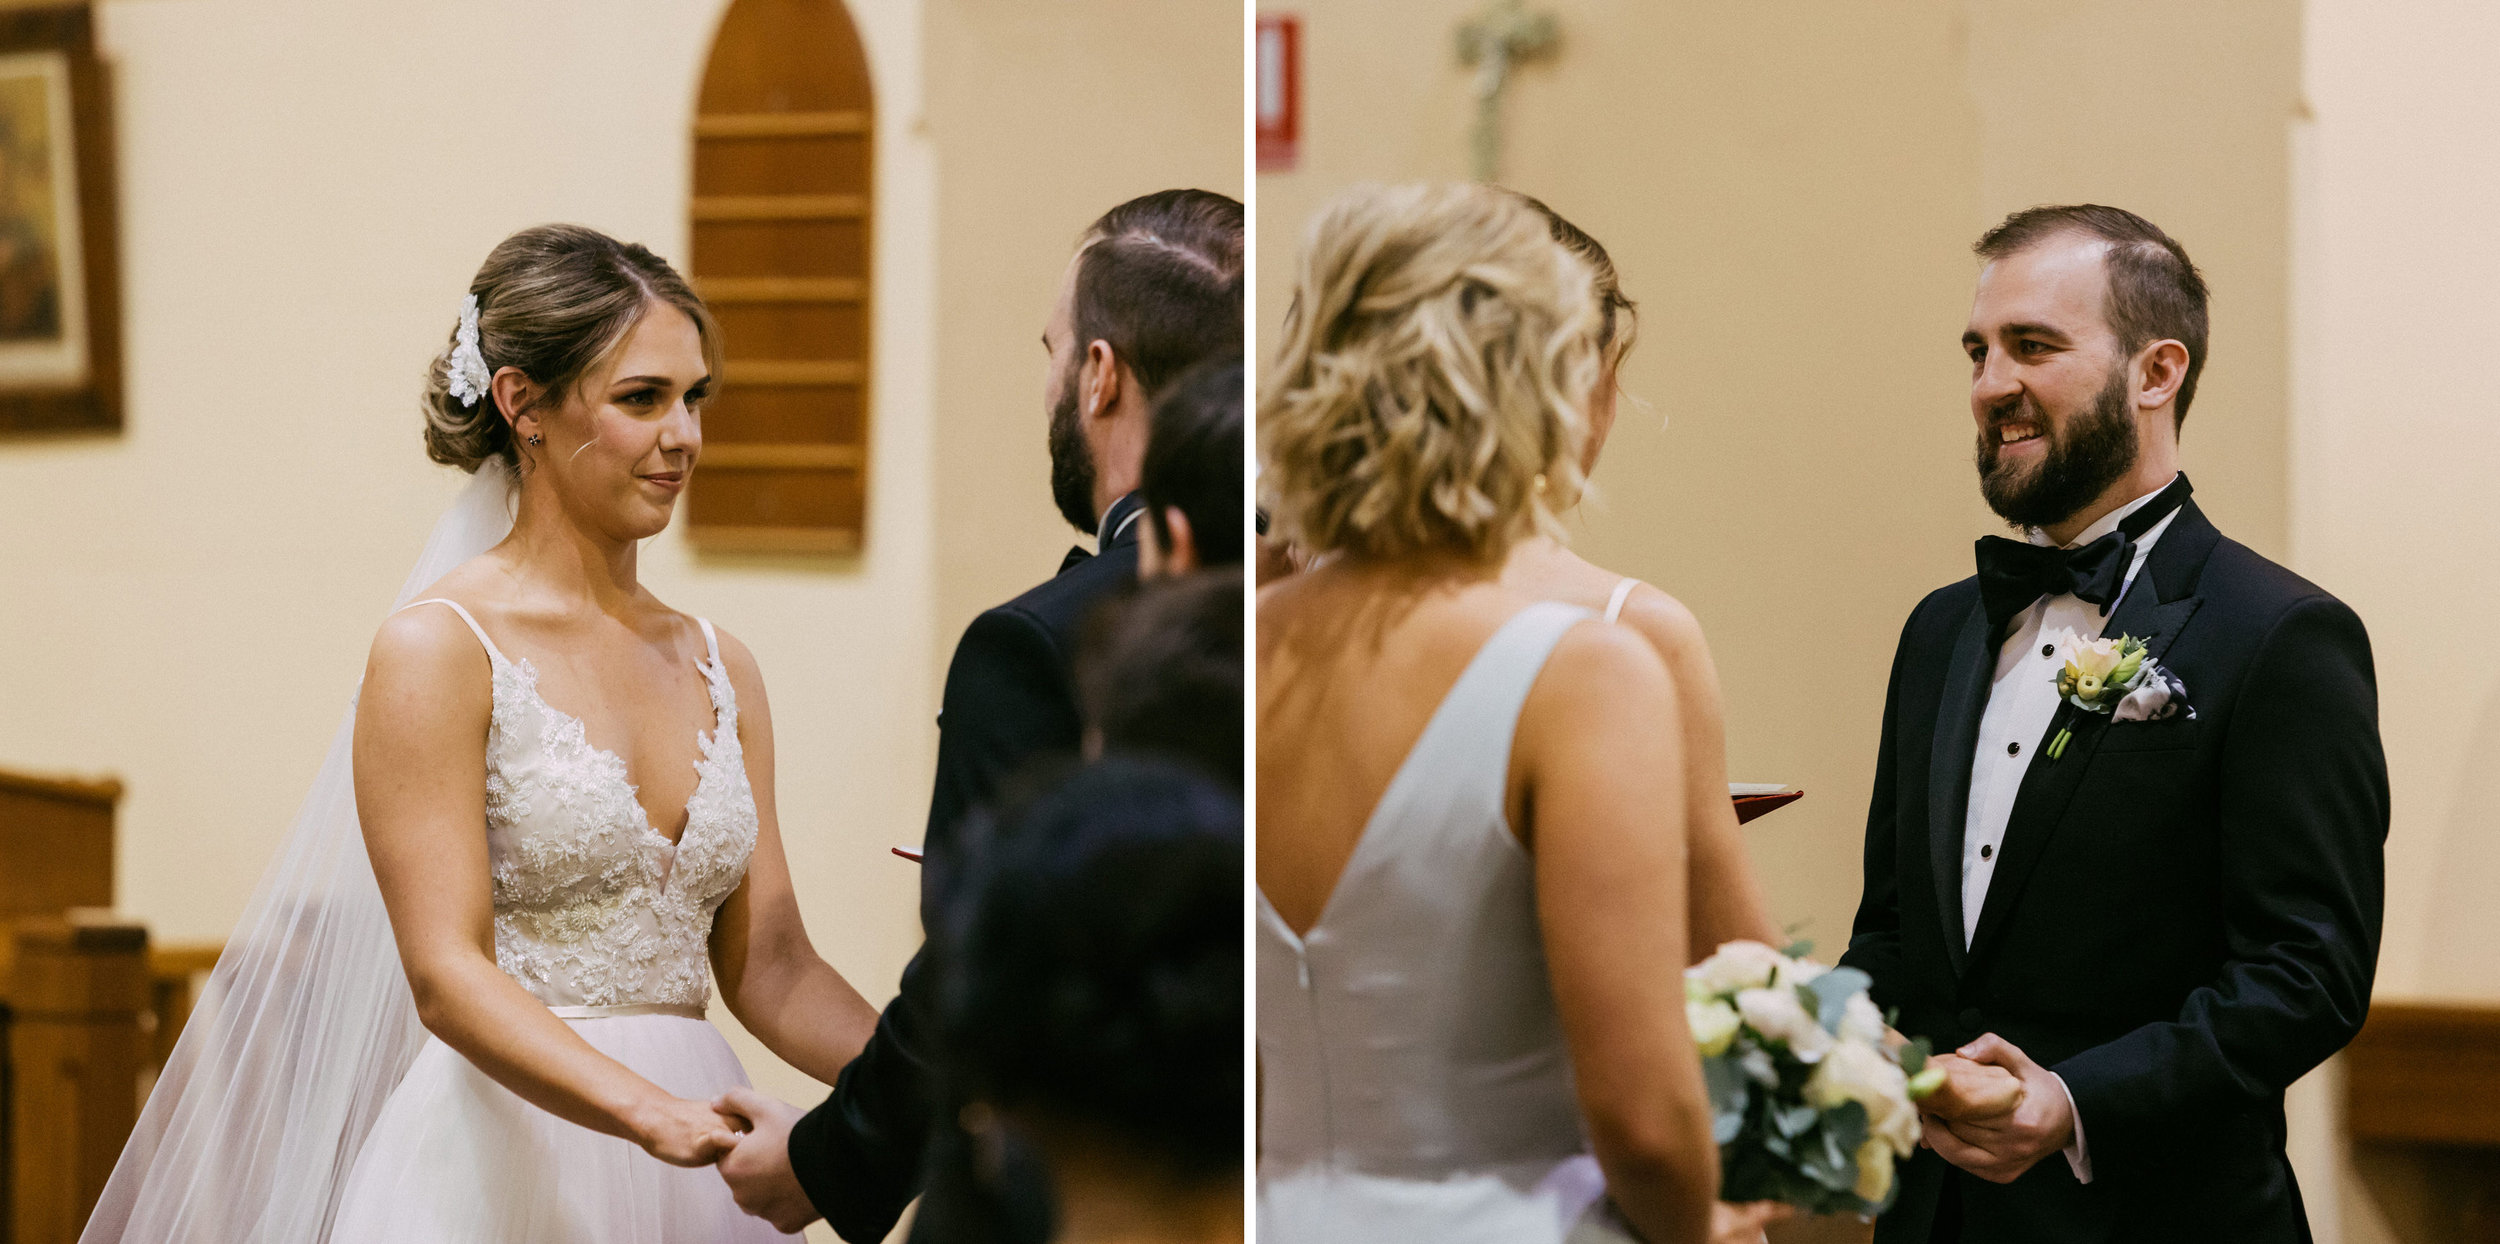 Adelaide Wedding 2019 066.jpg